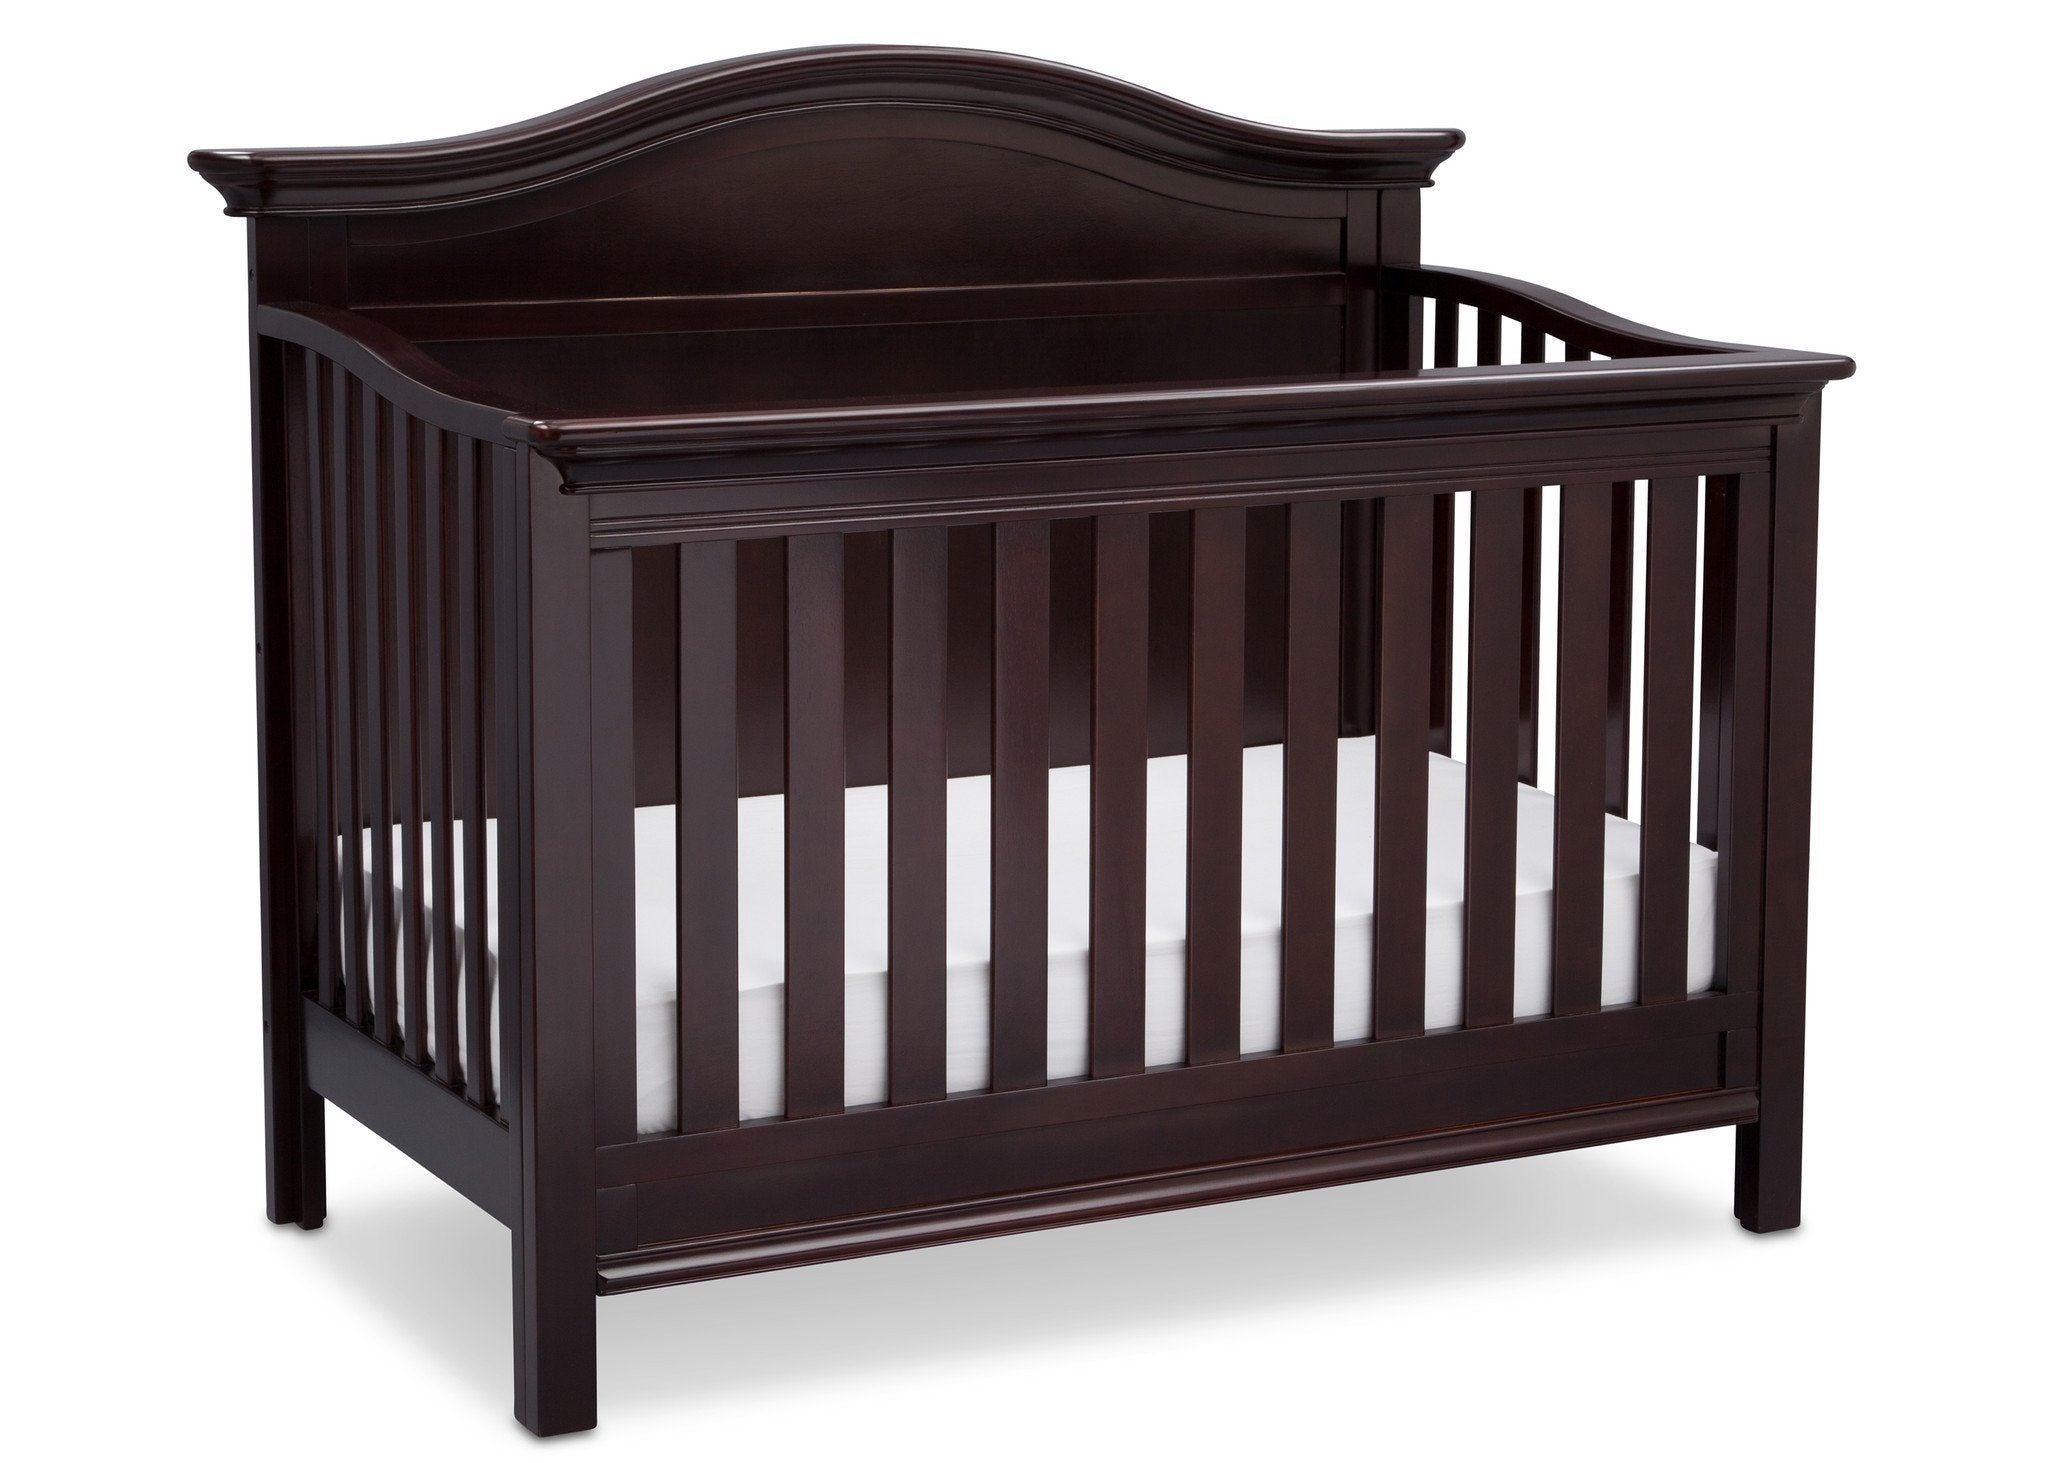 Serta Dark Chocolate (207) Bethpage 4-in-1 Crib, Side View with Crib Conversion c4c